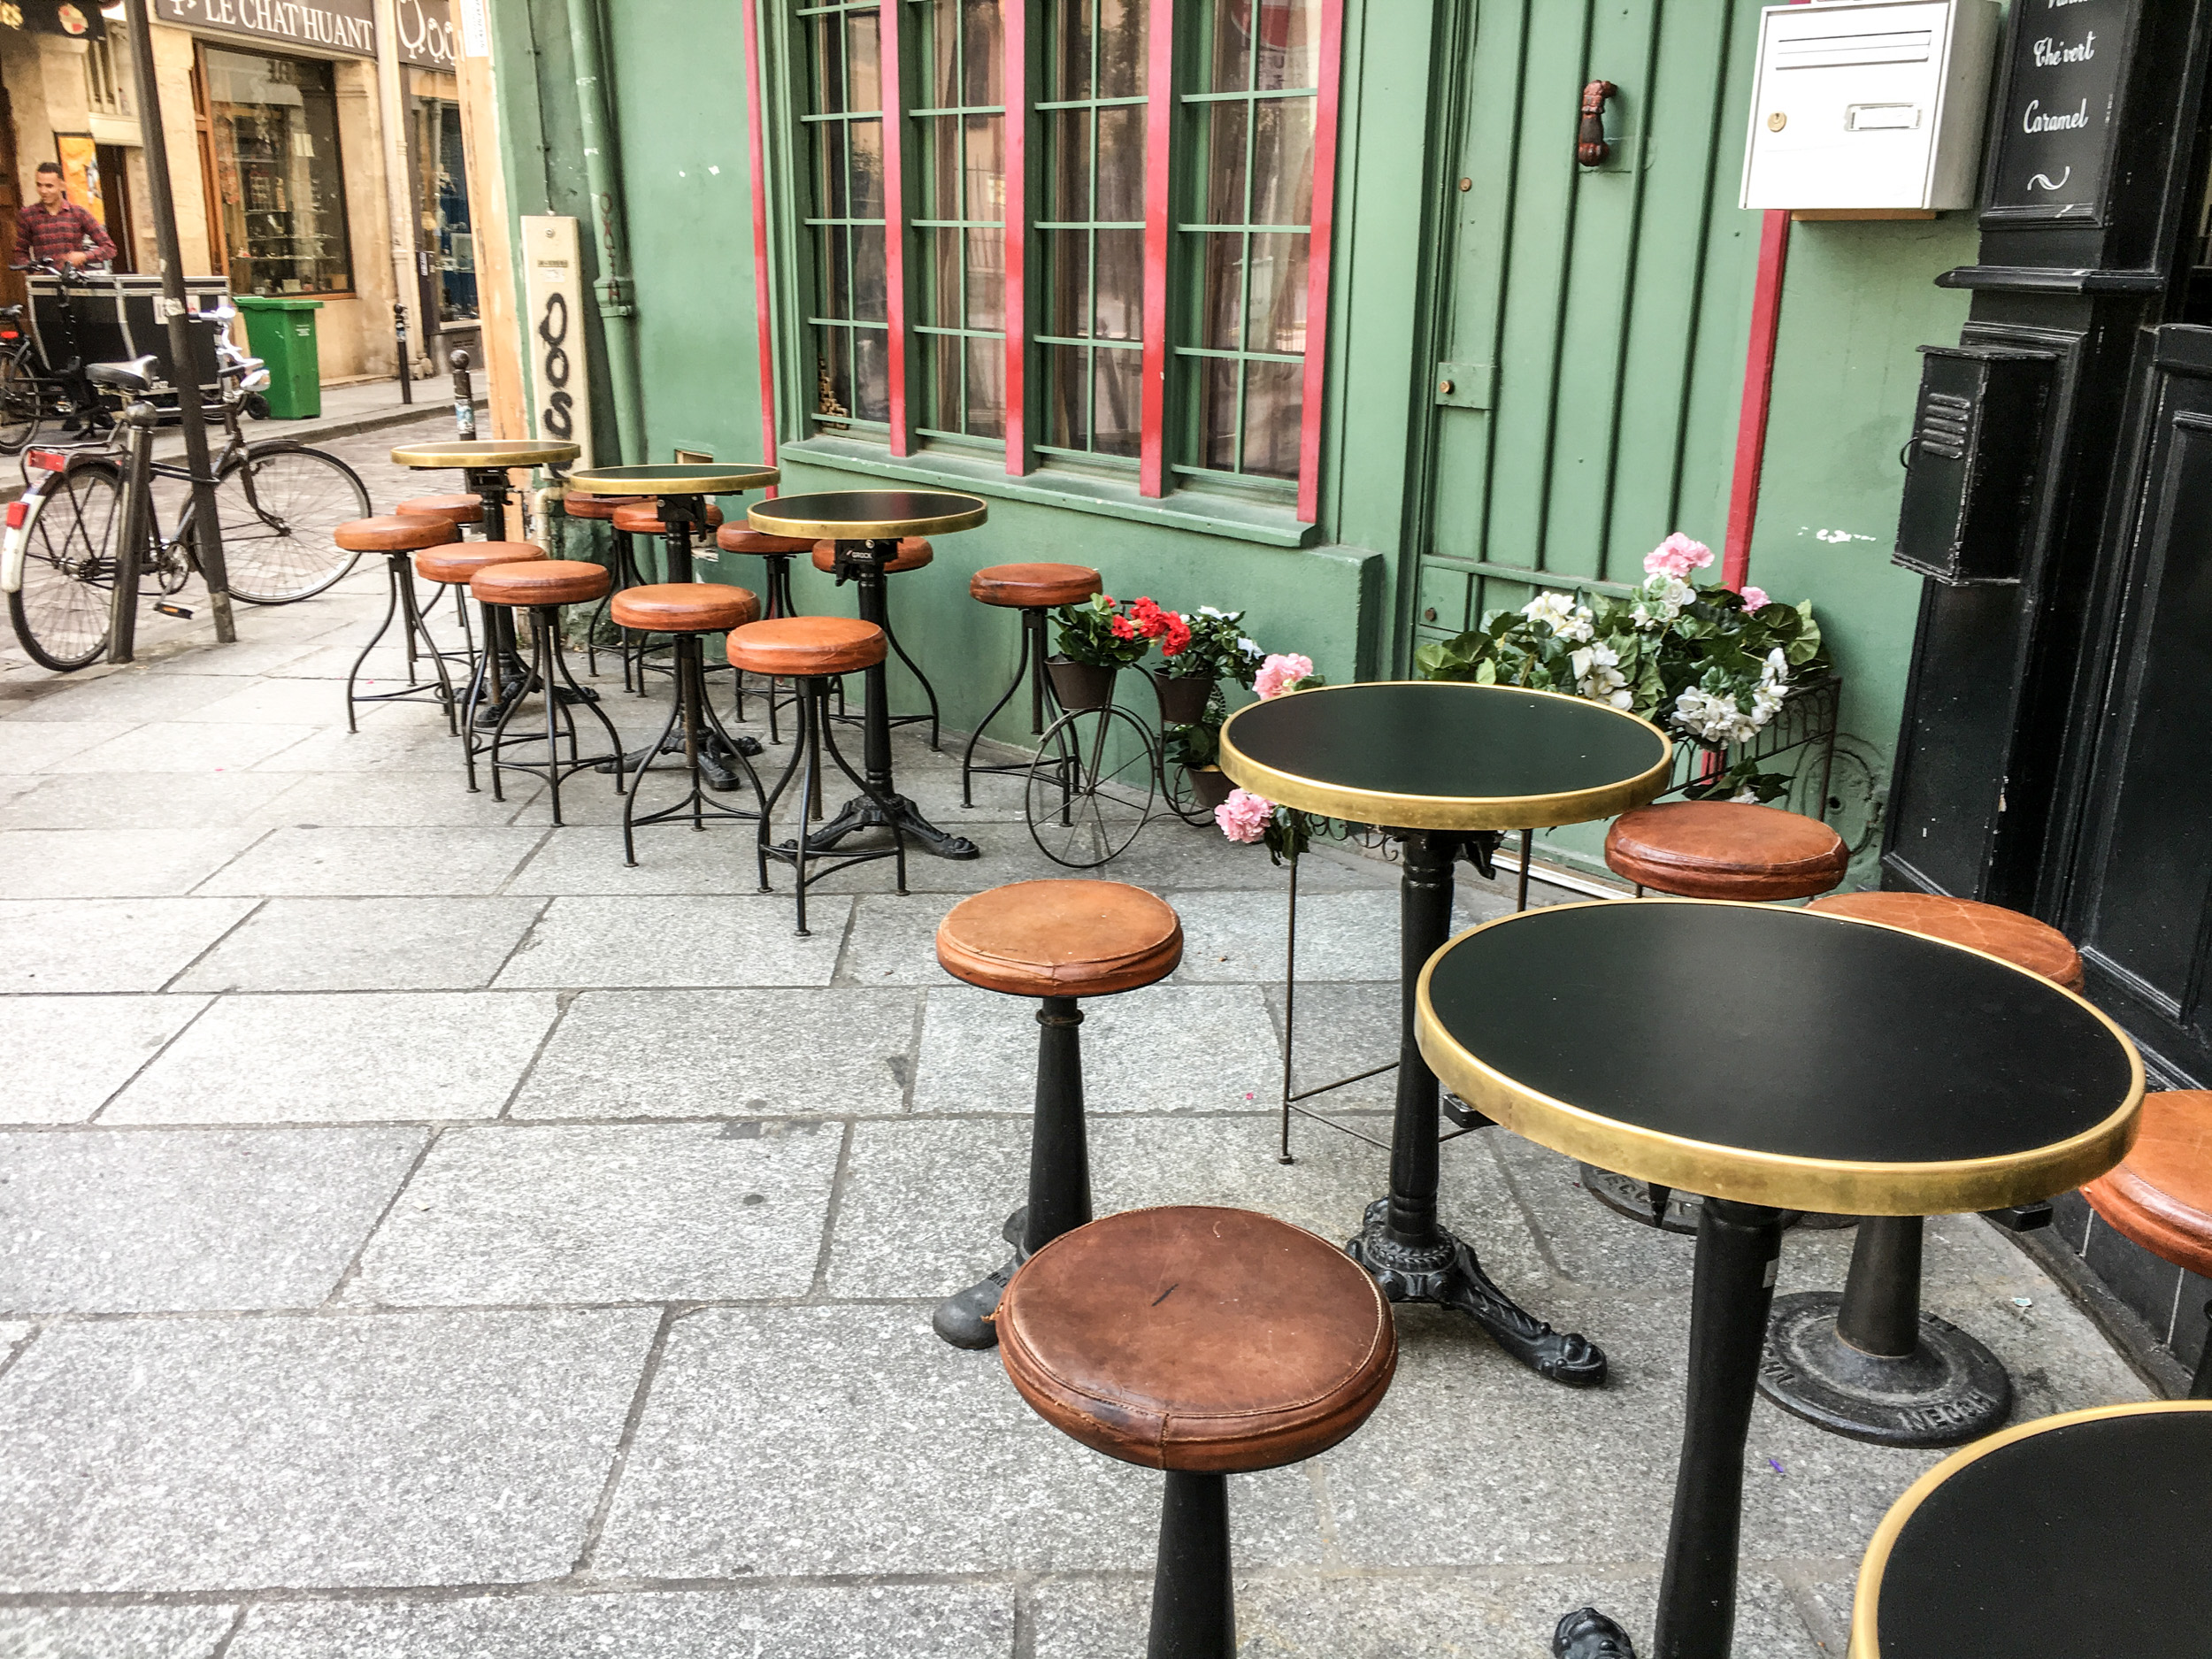 sku temple cafe high webster paris back bqphbbwwfixed also stool white listed wicker and outdoor stools sometimes barstool parisian black is bar bqphbbww under manufacturer following the numbers